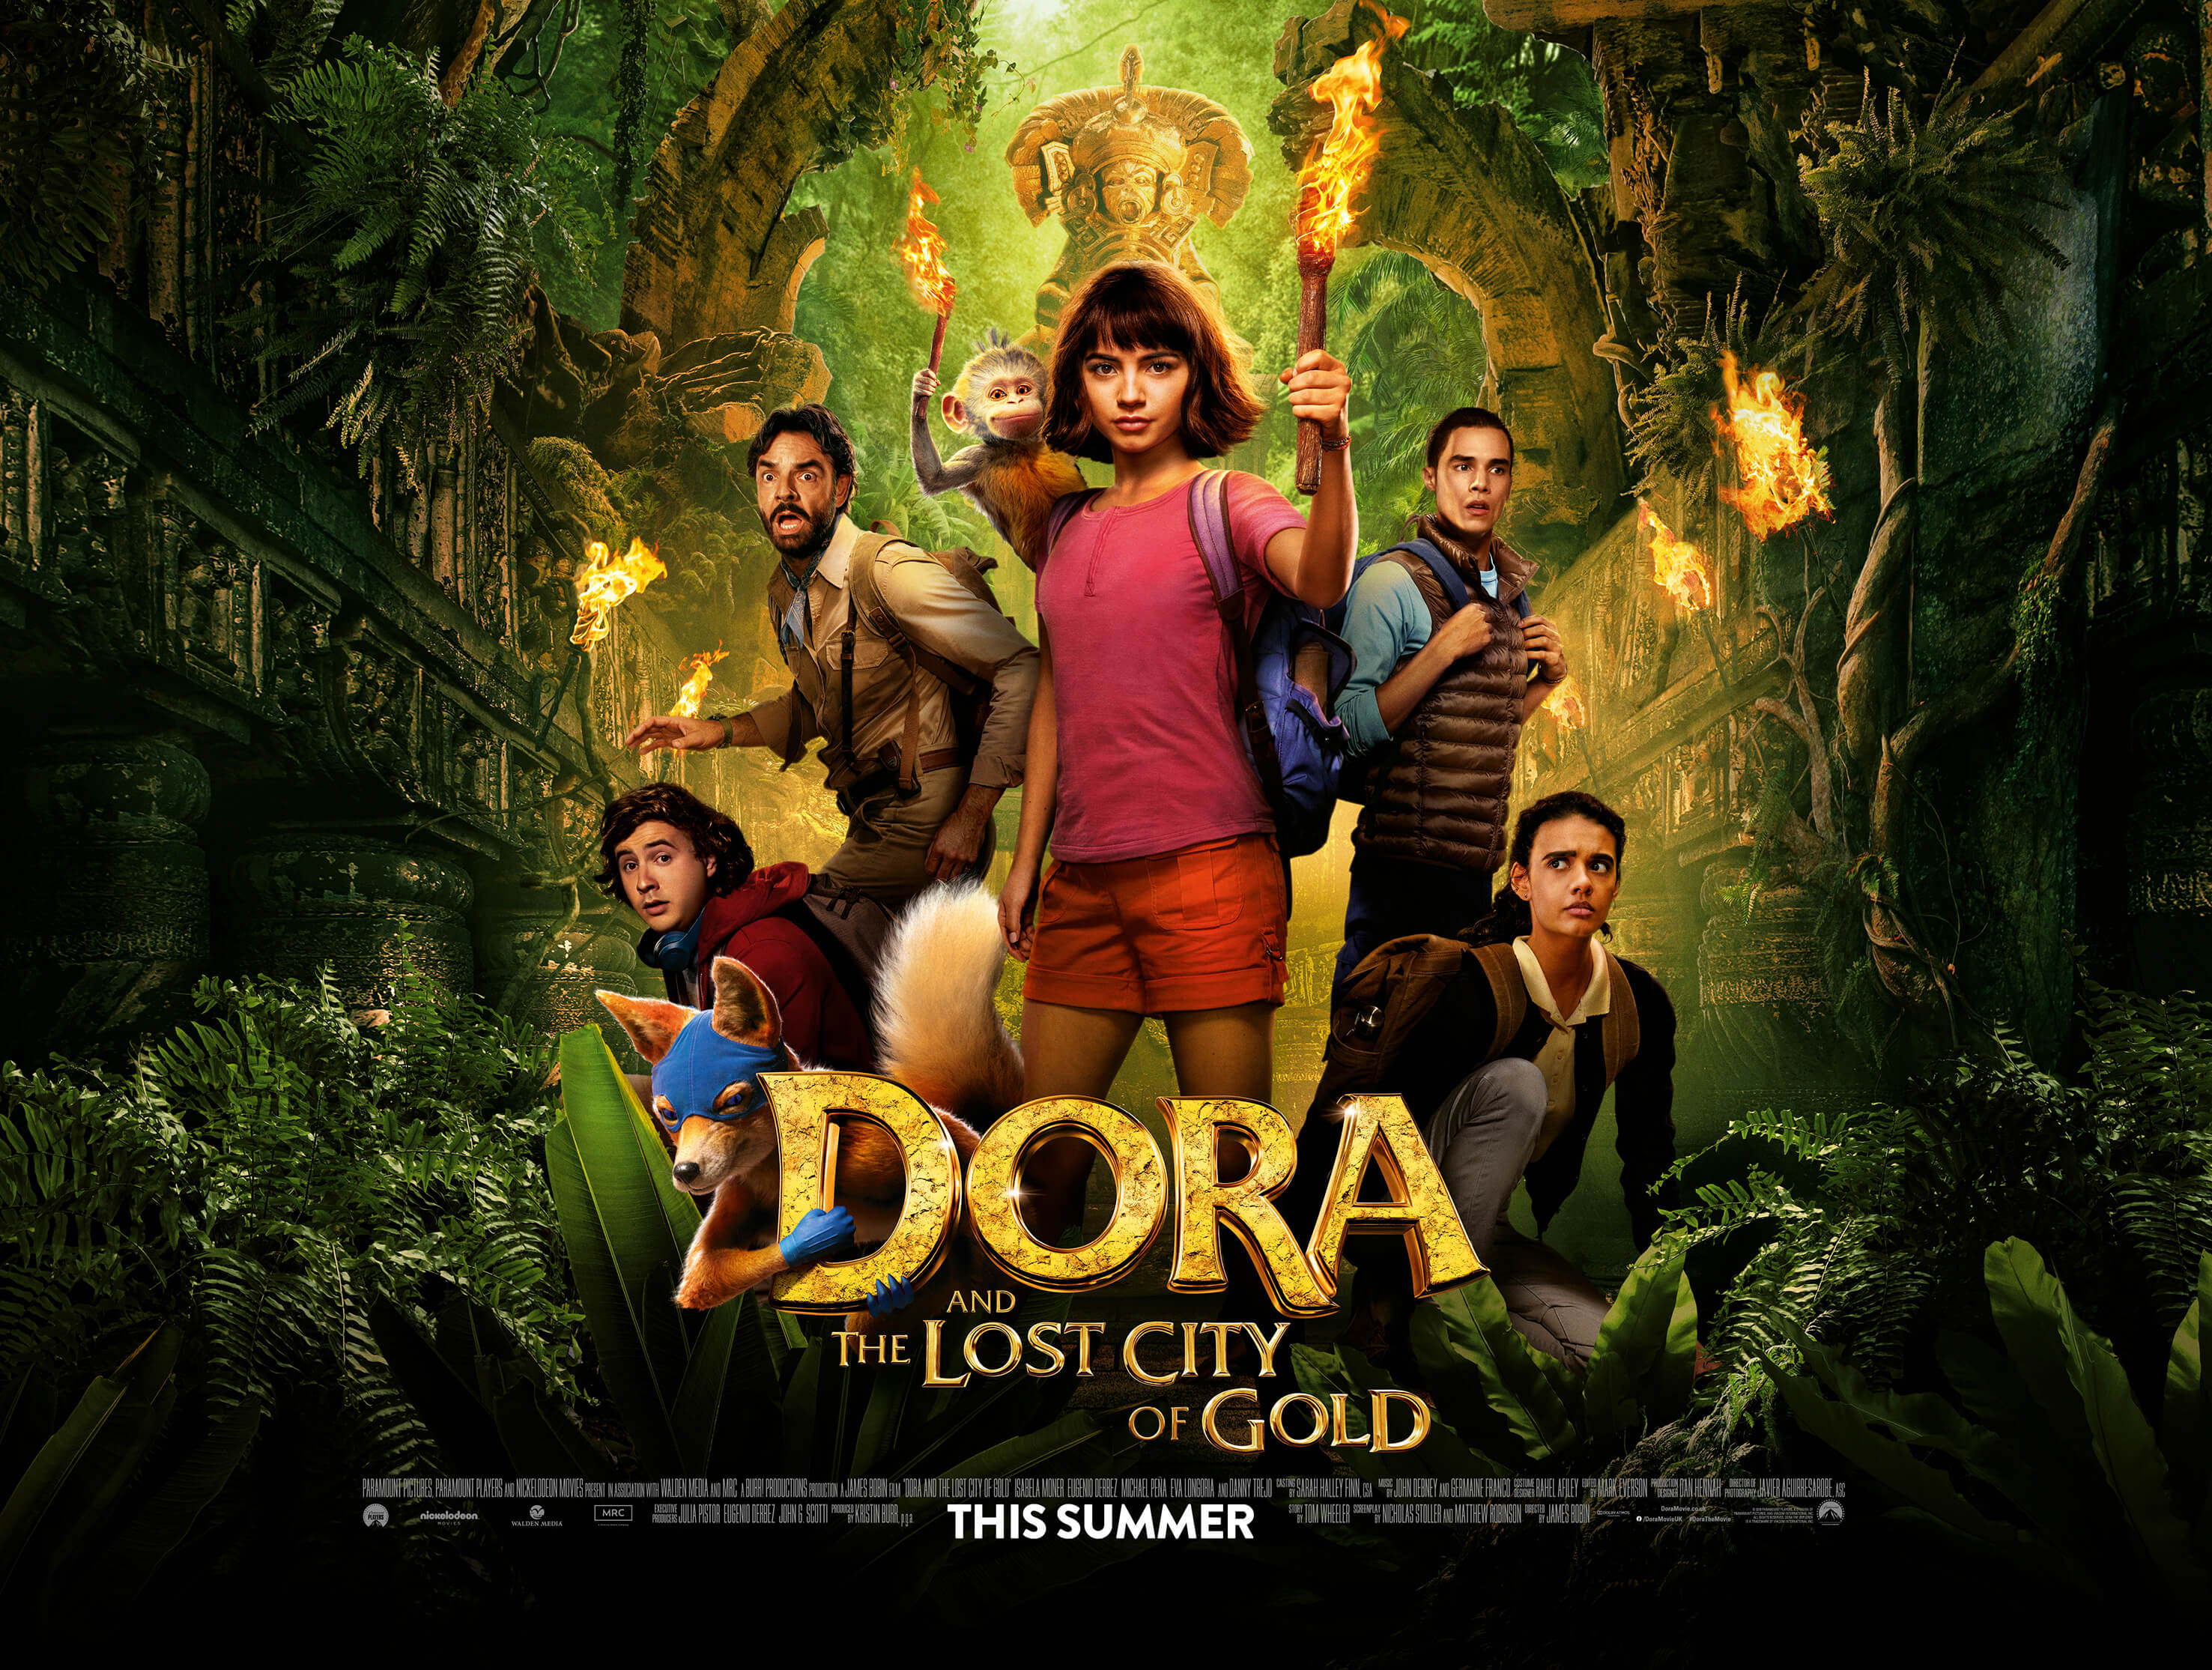 Dora And The Lost City Of Gold: Book Now at The Light